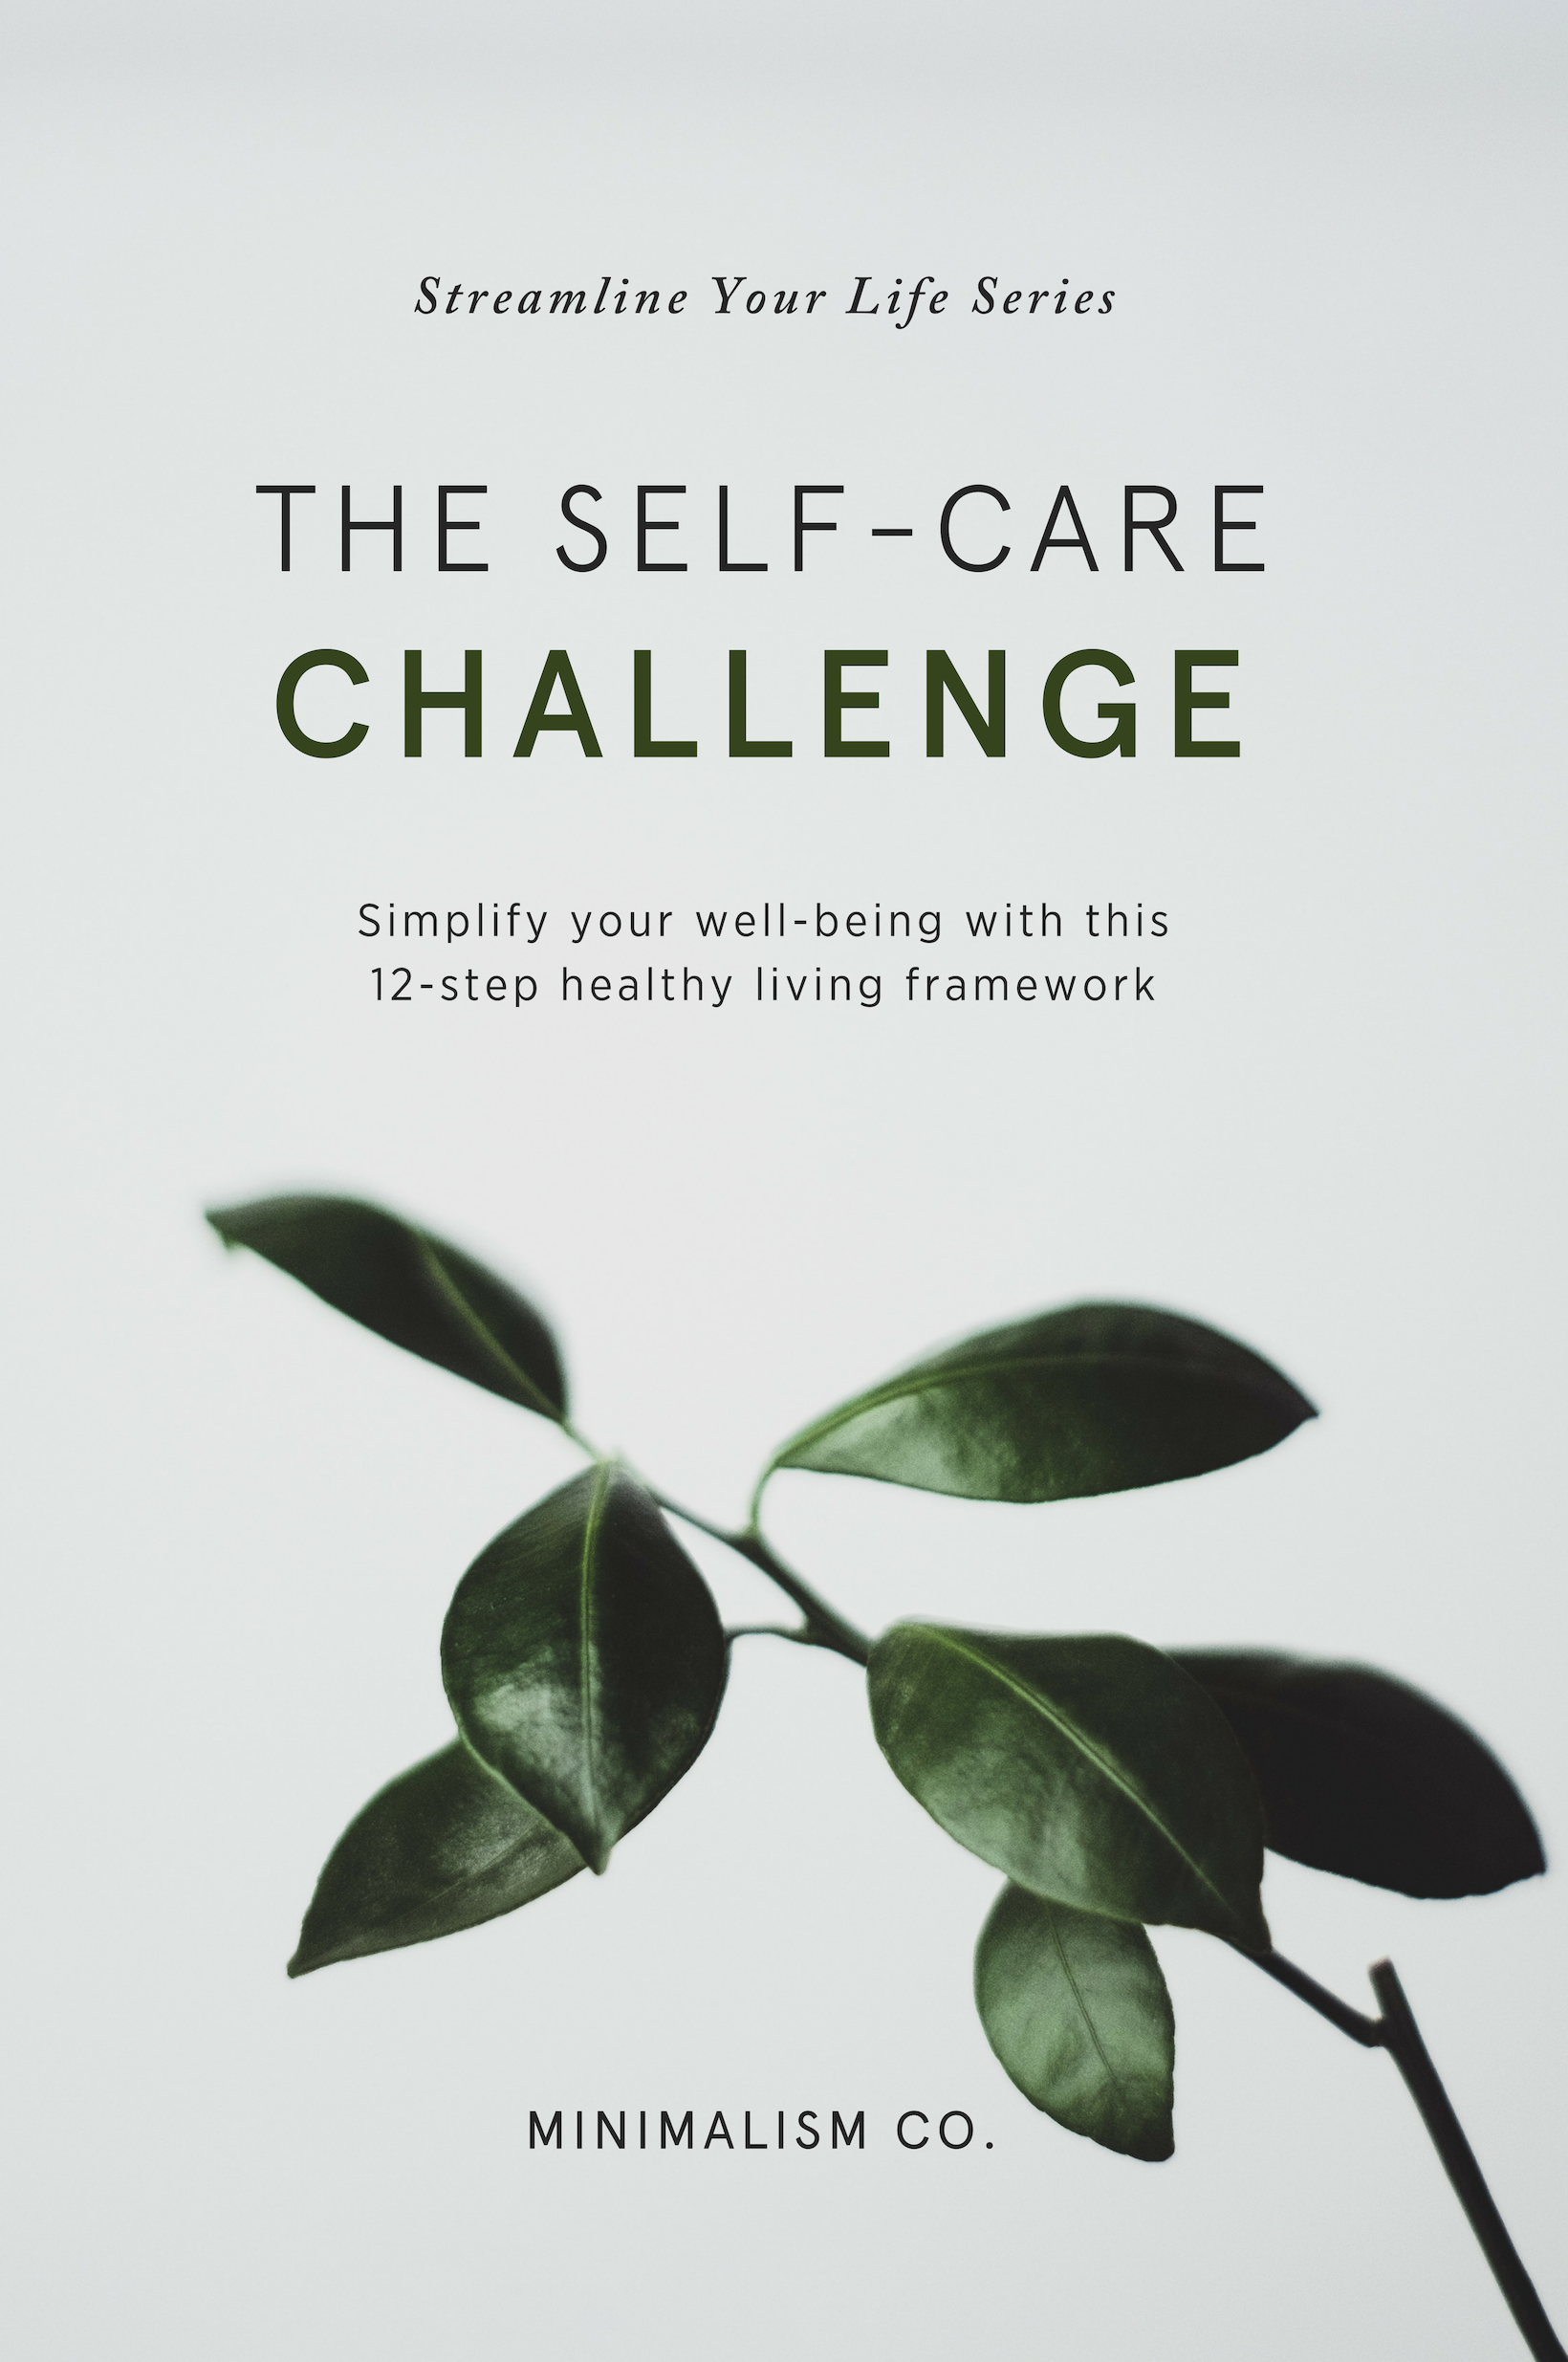 Bonus: Simplify your well-being with this 12-step healthy living framework - This holistic program is built around 12 pillars that correspond to 12 of the most important elements of health and wellness. The content in each pillar draws from both mainstream and alternative concepts and therapies and is based on science-backed studies derived from reputable health and wellness authorities.